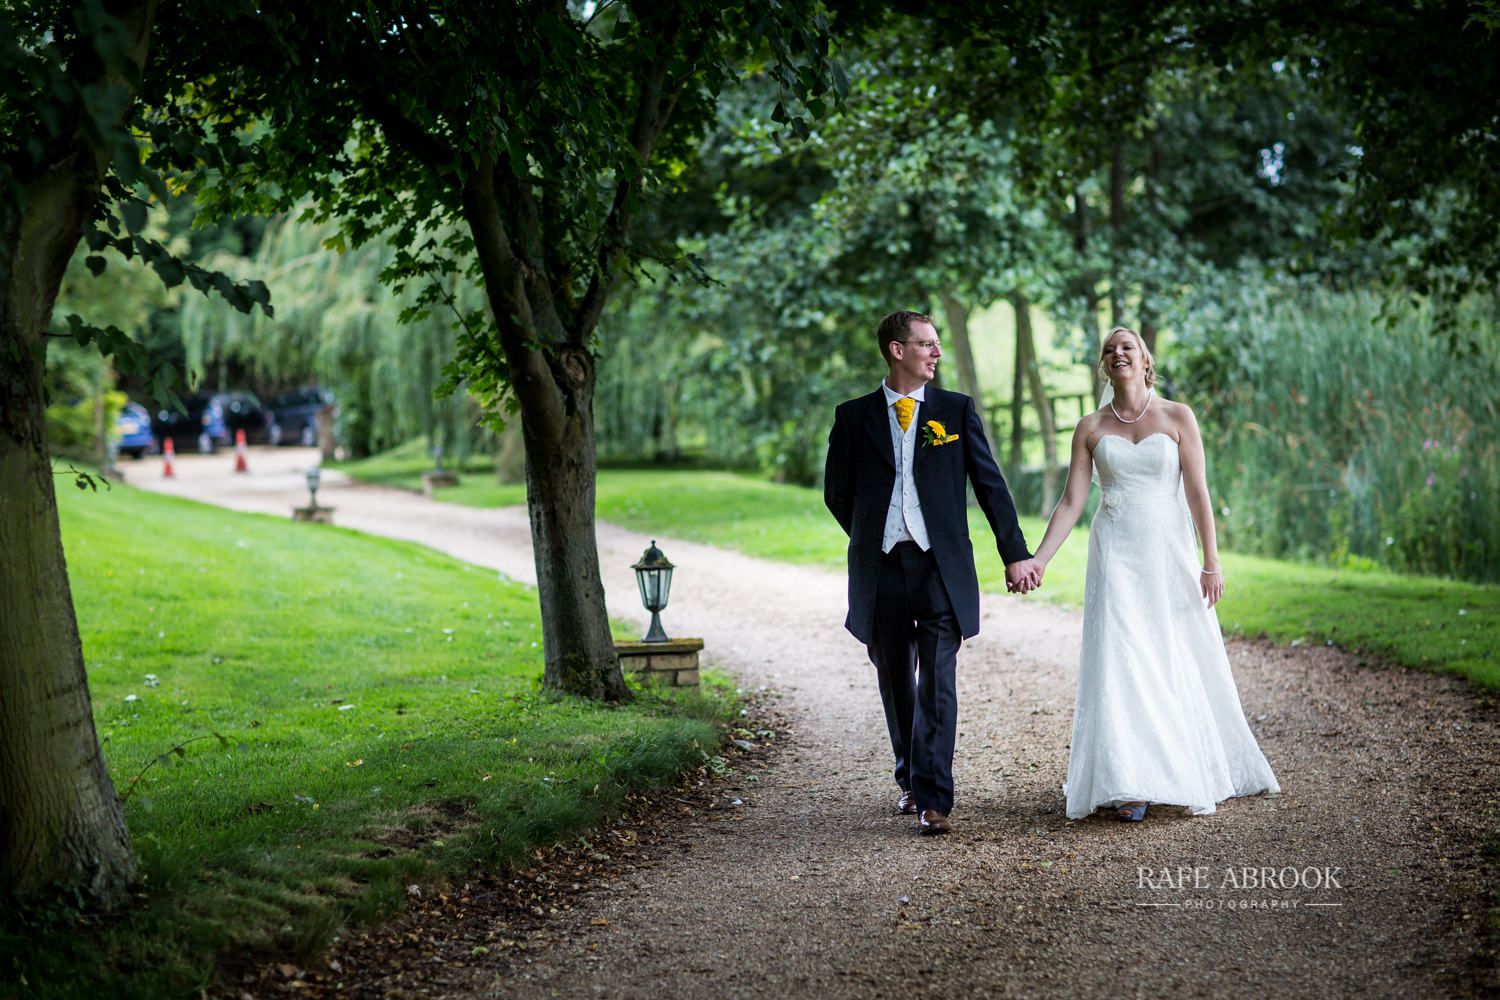 minstrel court wedding royston cambridge hertfordshire wedding photographer-1317.jpg